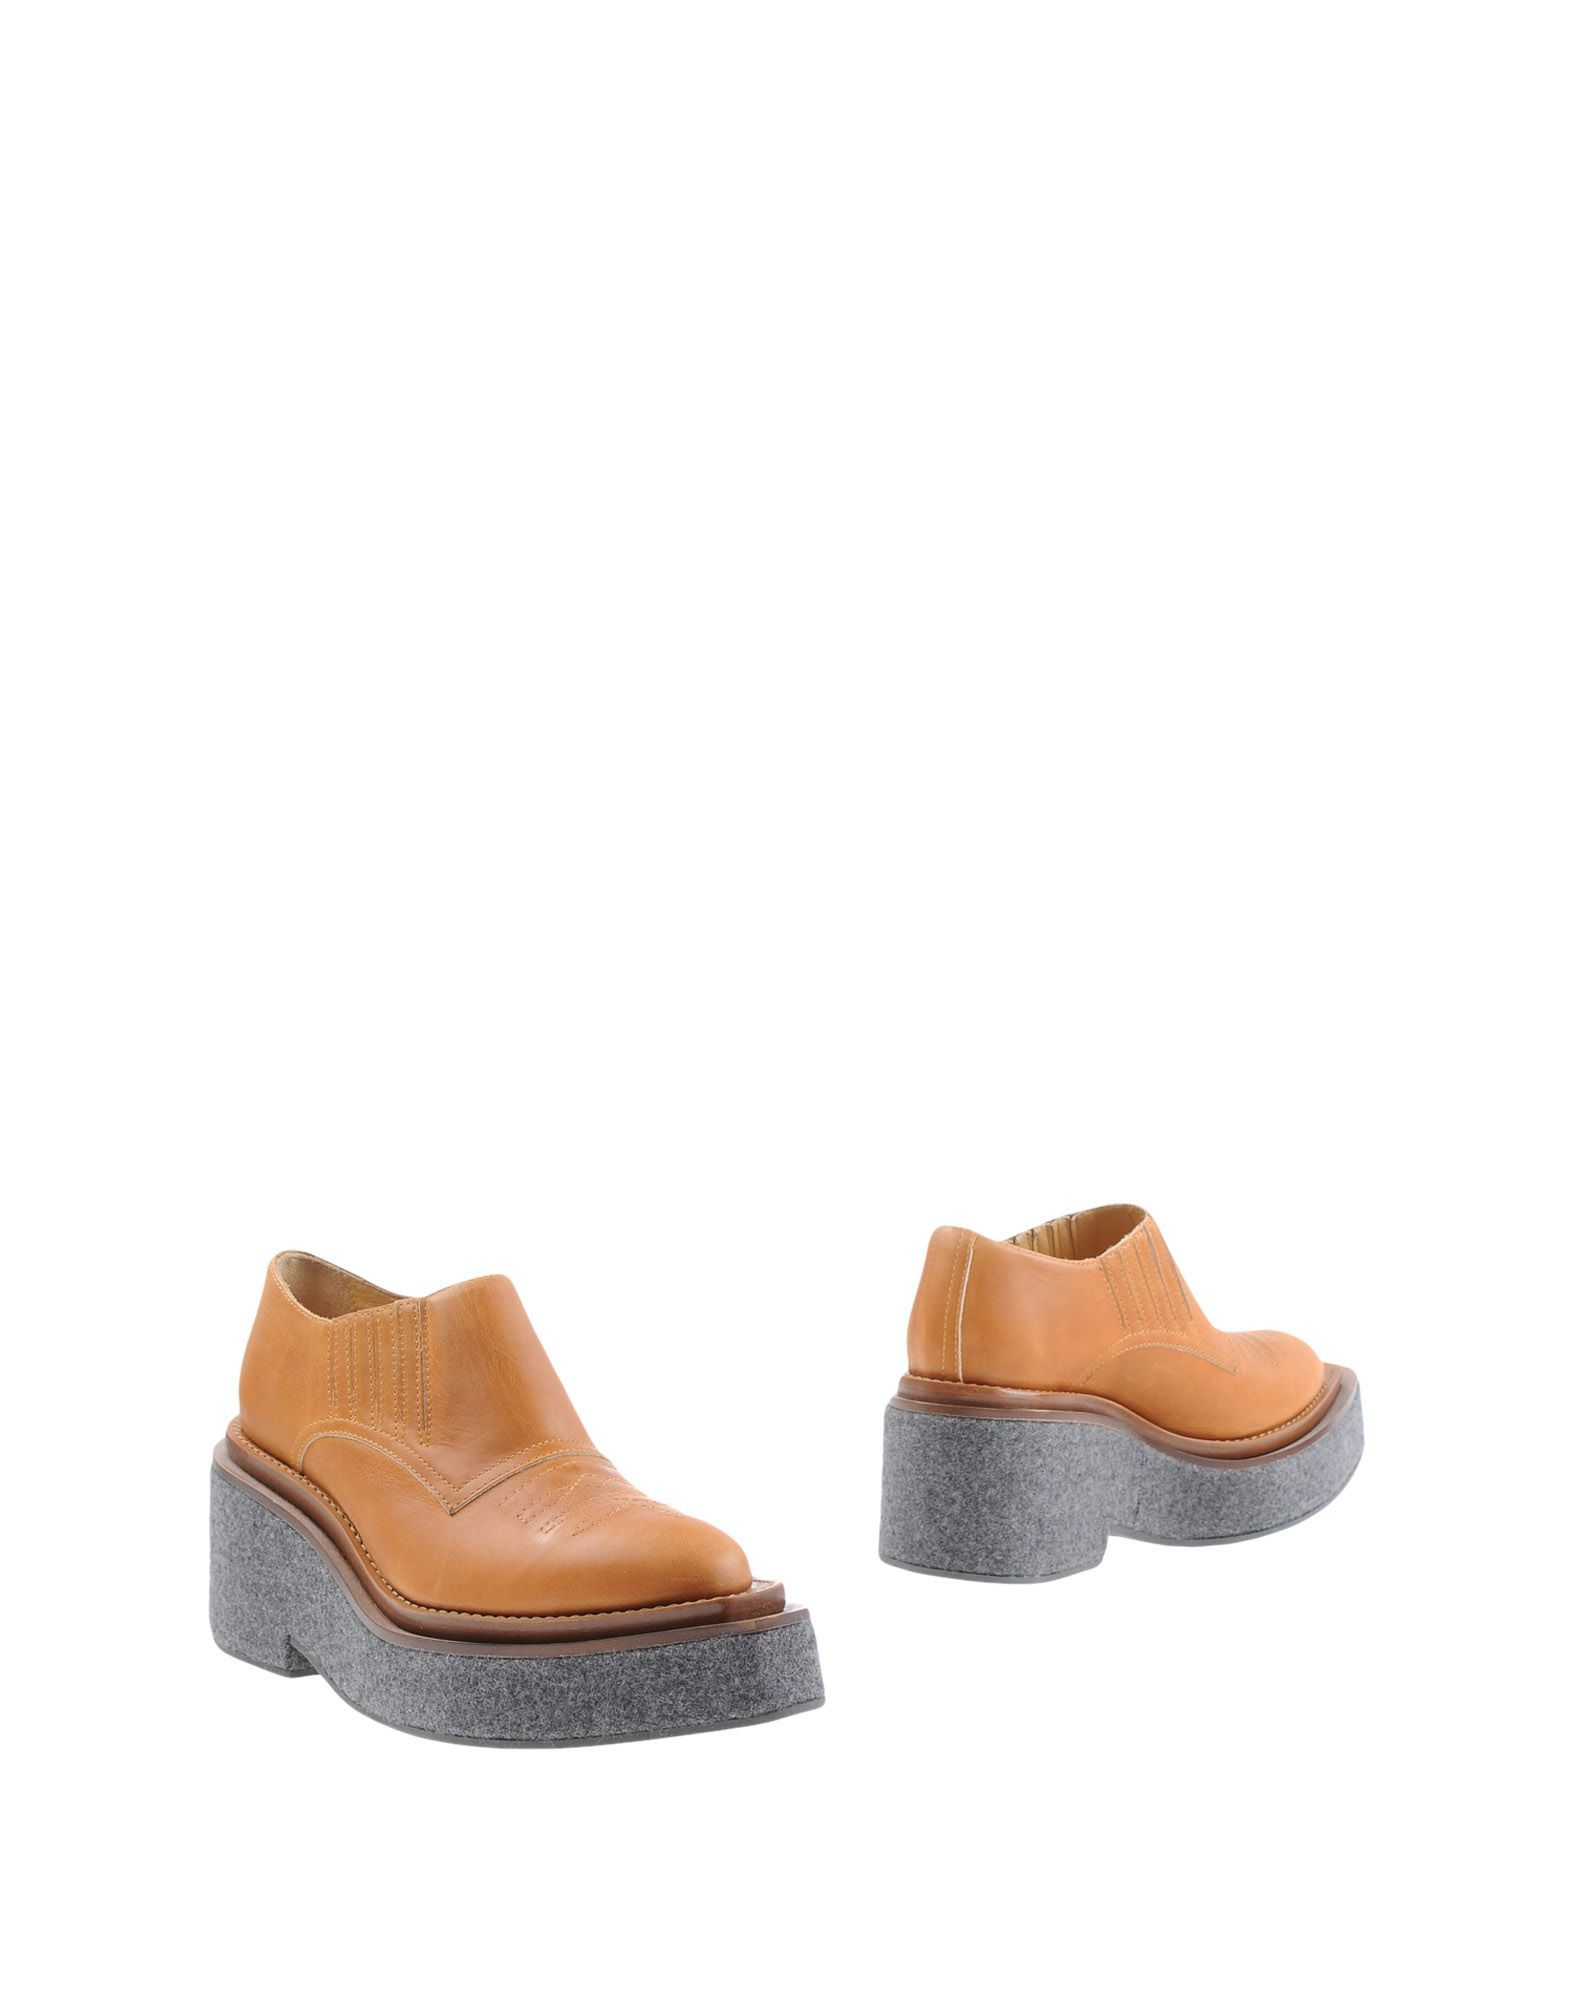 MM6 Maison Margiela Brown Leather Shoes